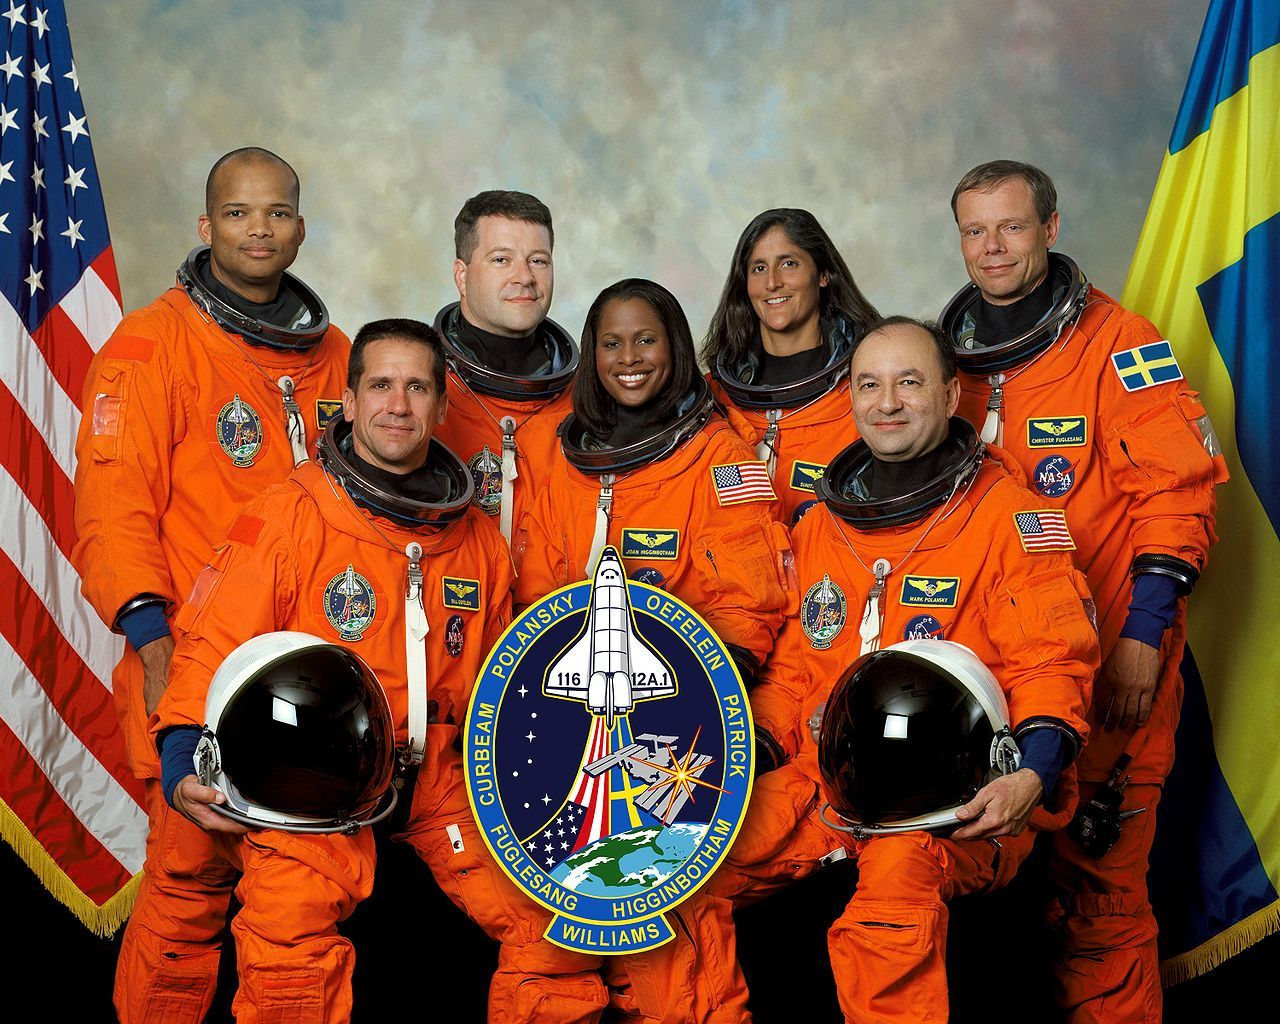 Discovery Sts 116 Launched December 9 In